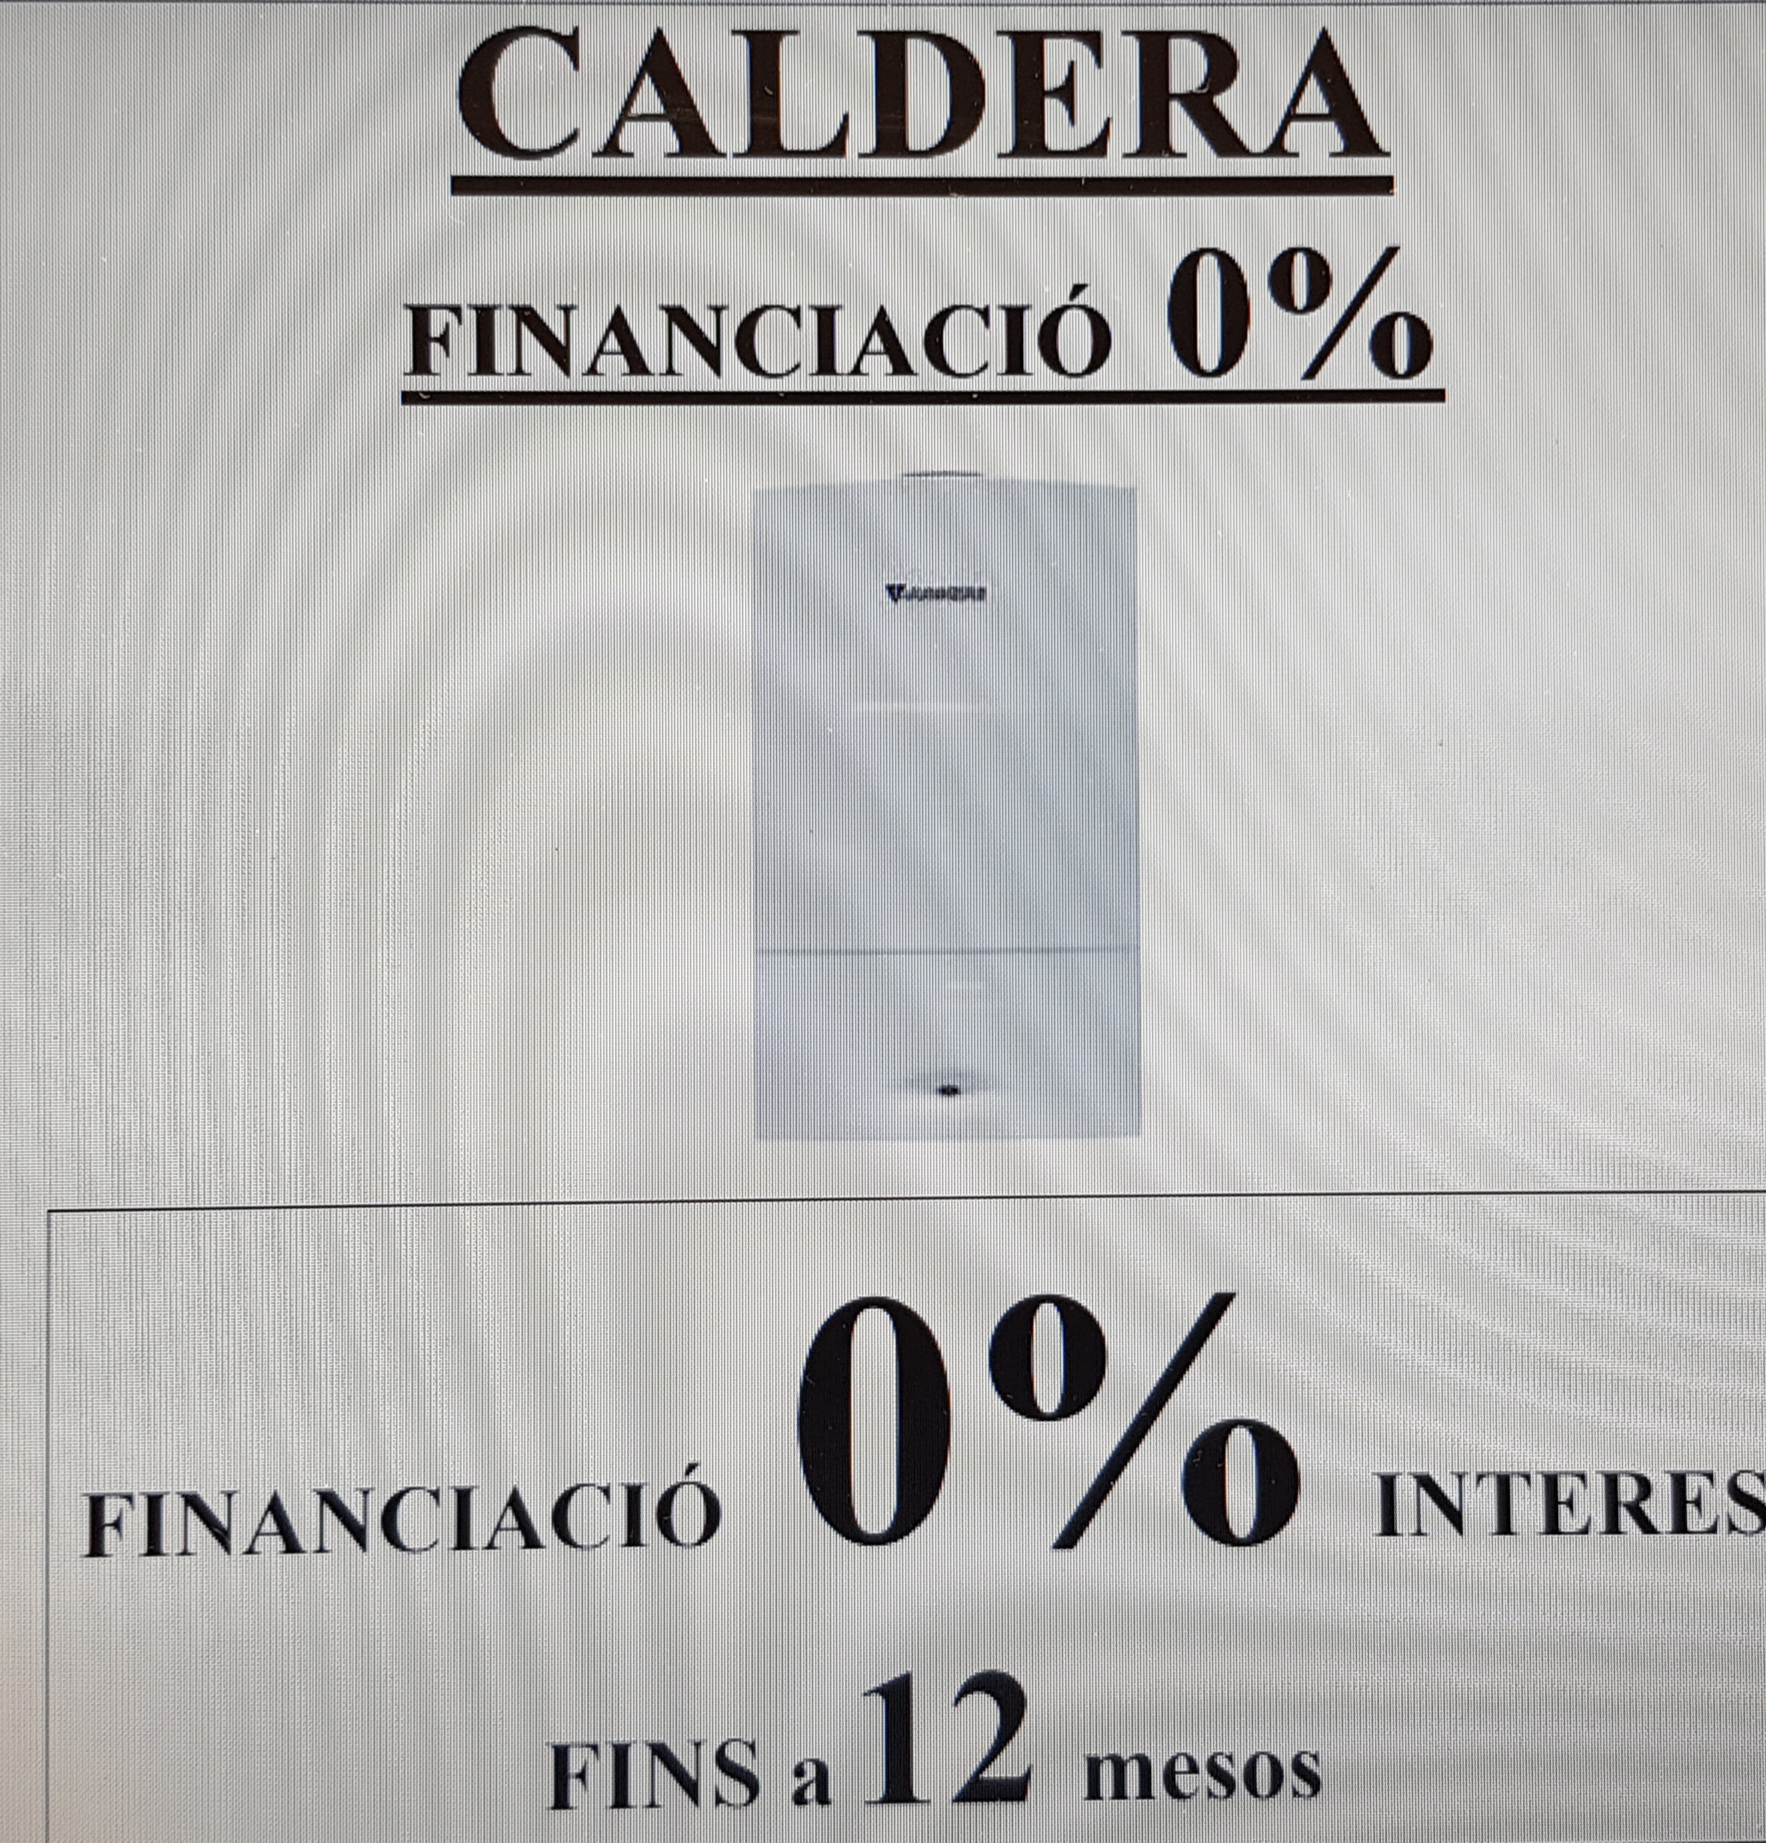 FINANCIACIÓ 0% - CALDERES